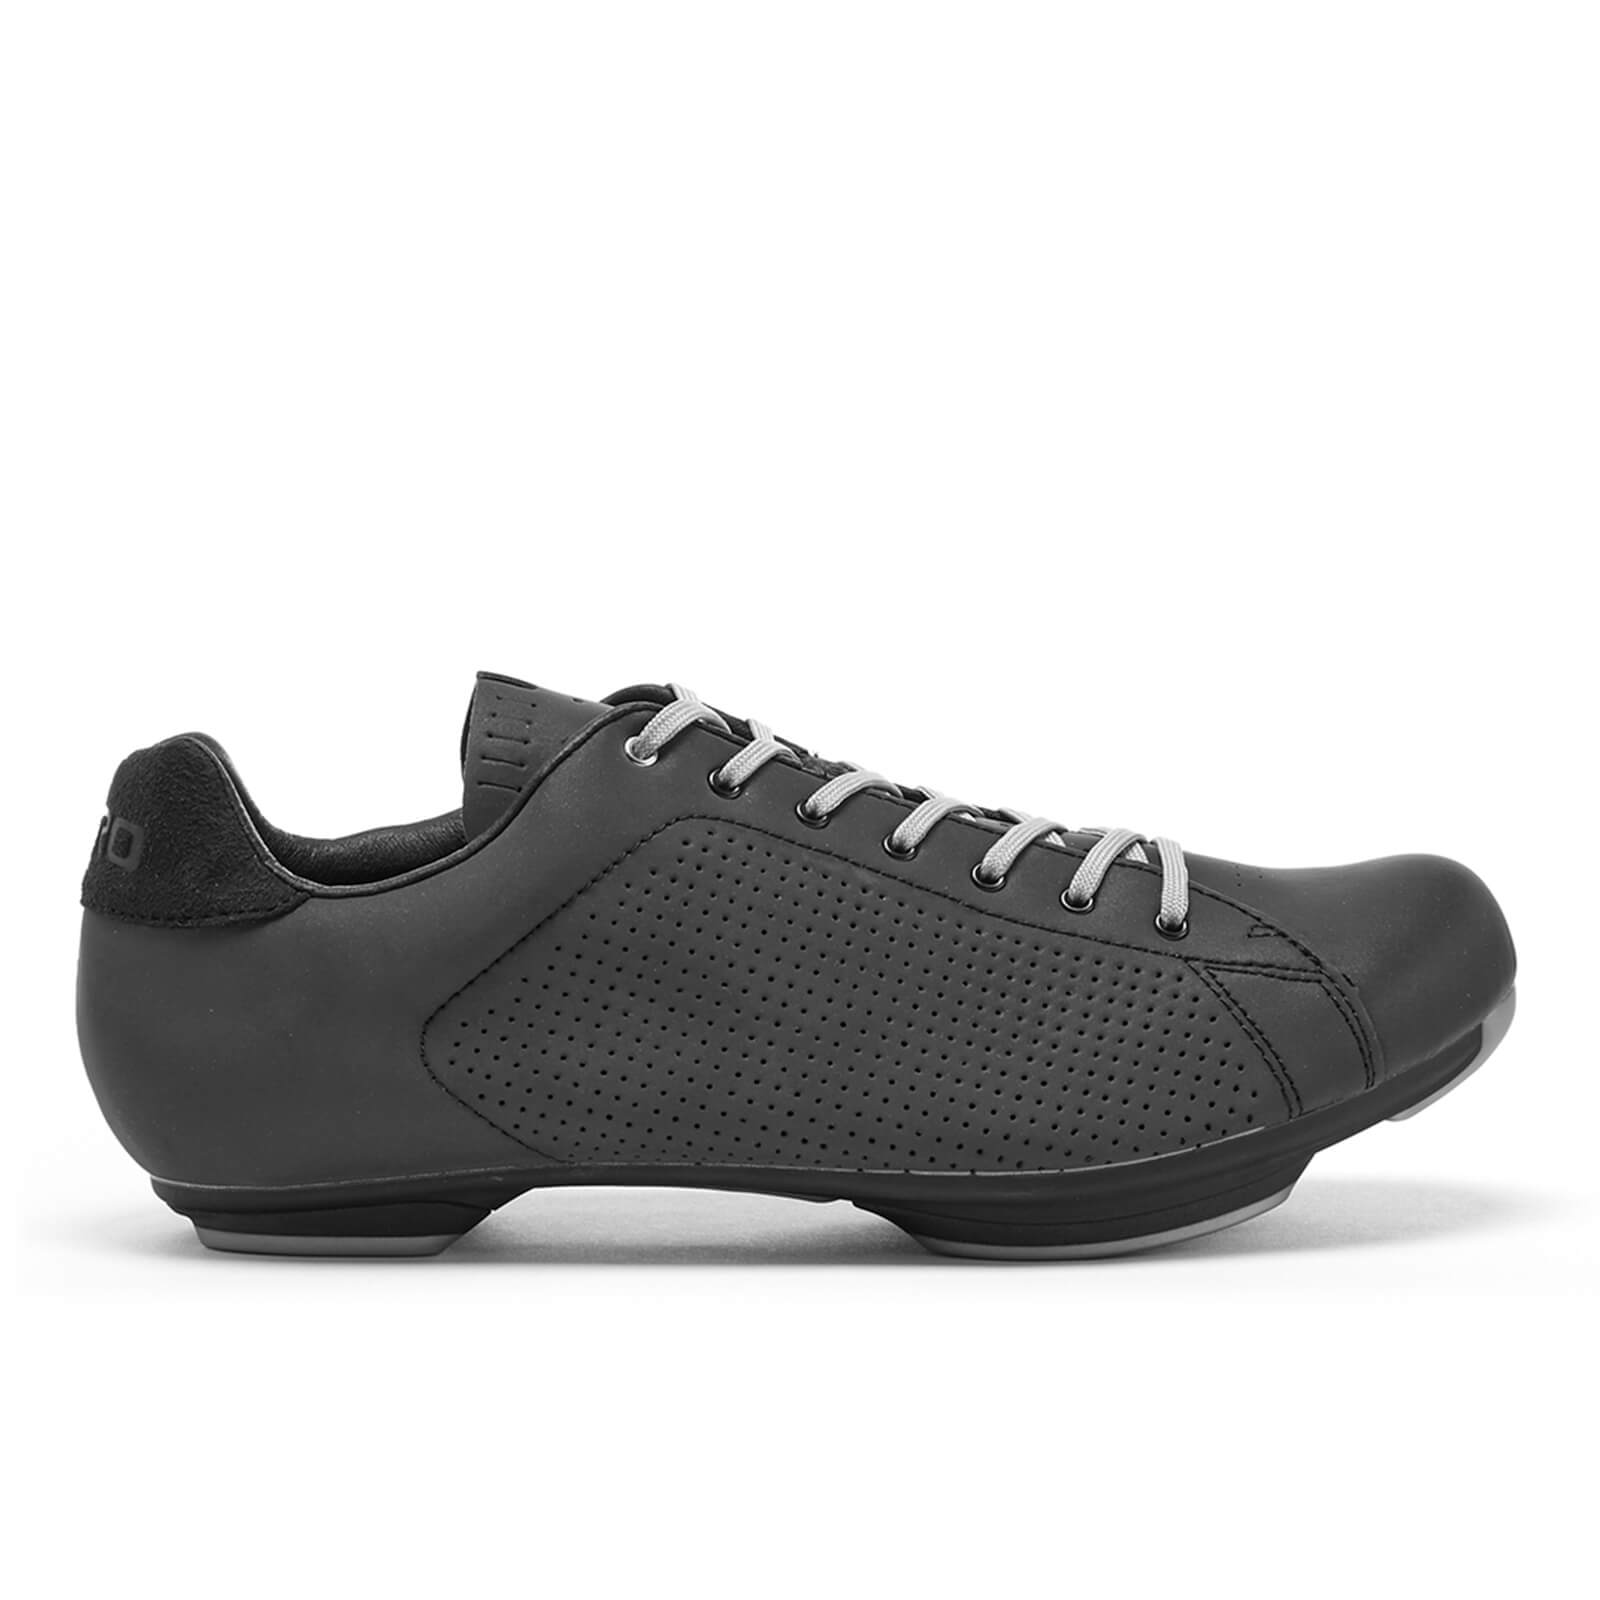 Giro Republic LX Road Cycling Shoes - Dark Shadow Reflective